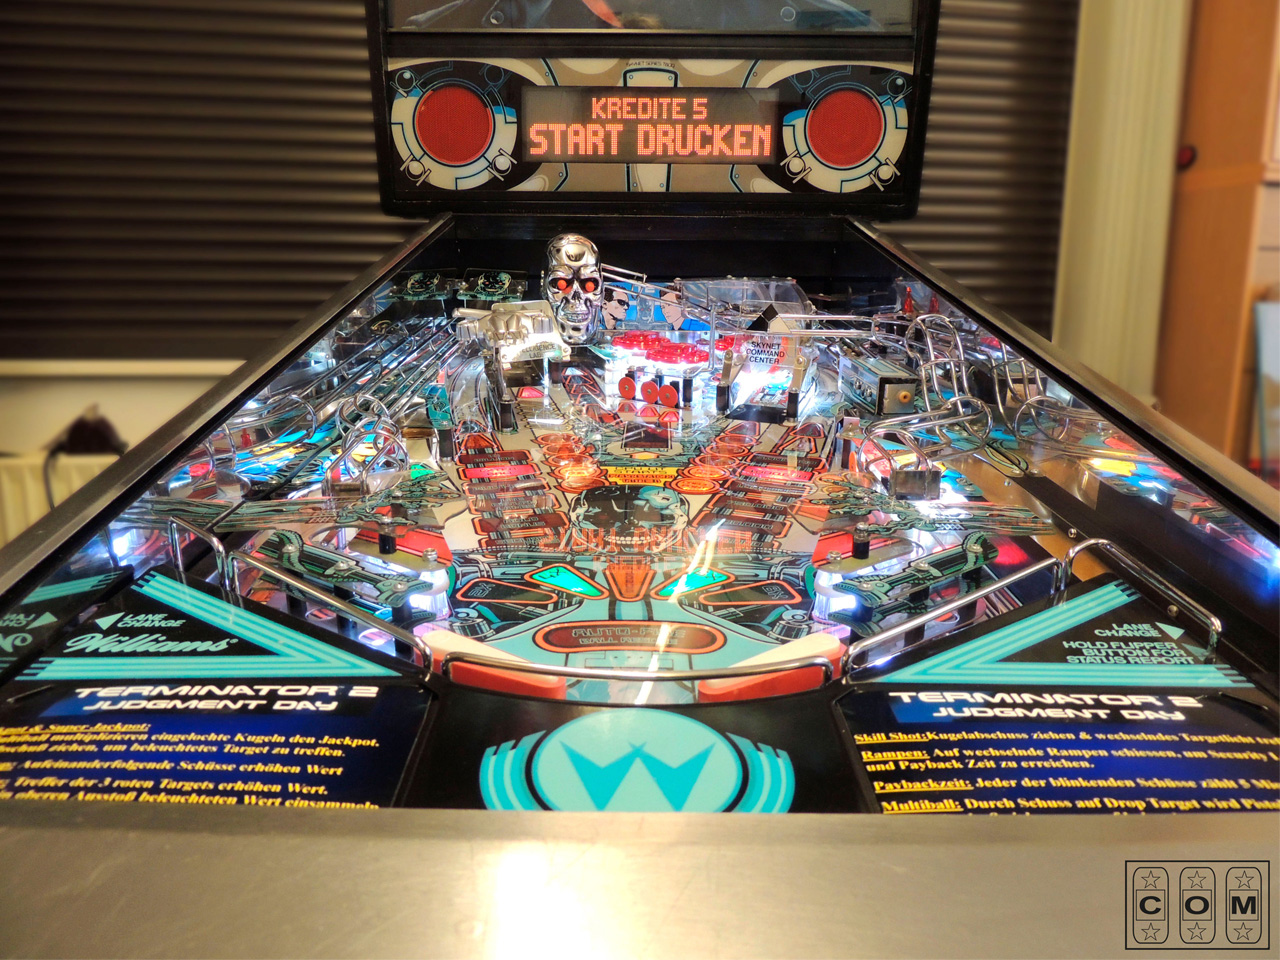 Terminator 2 Playfield Nachher